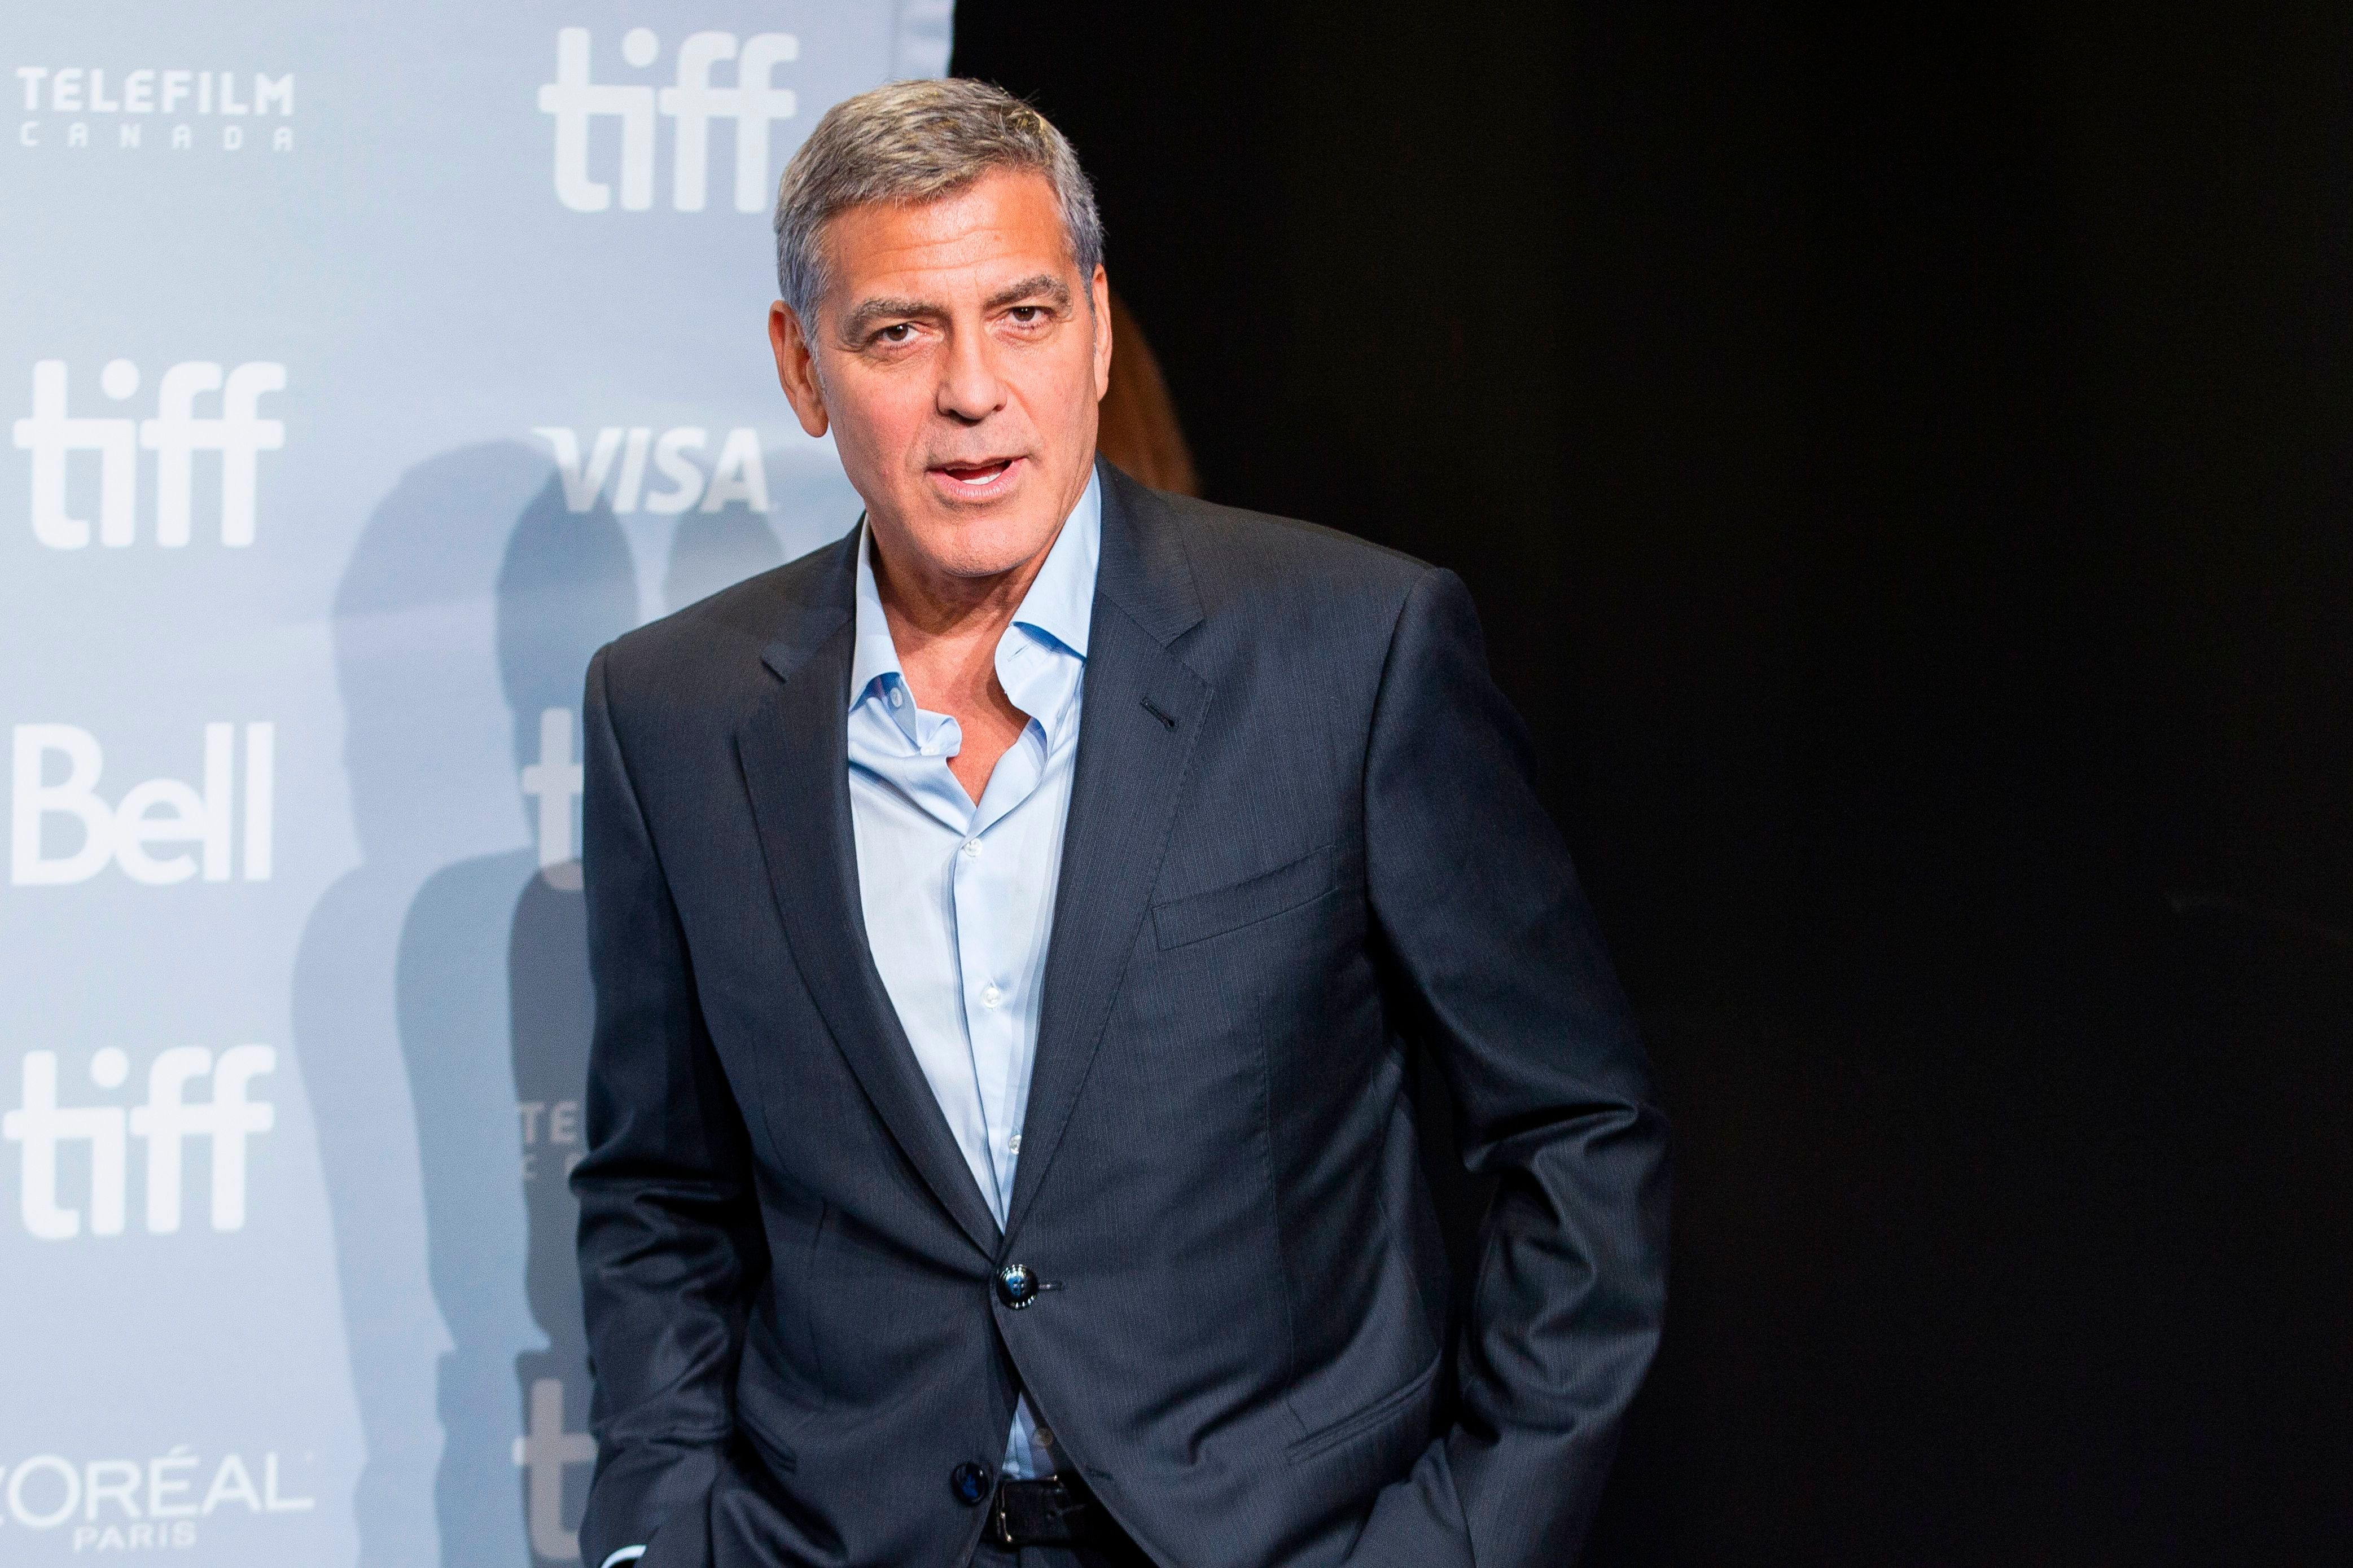 George Clooney Cries Four Times A Day Because He's So Tired As A Dad Of